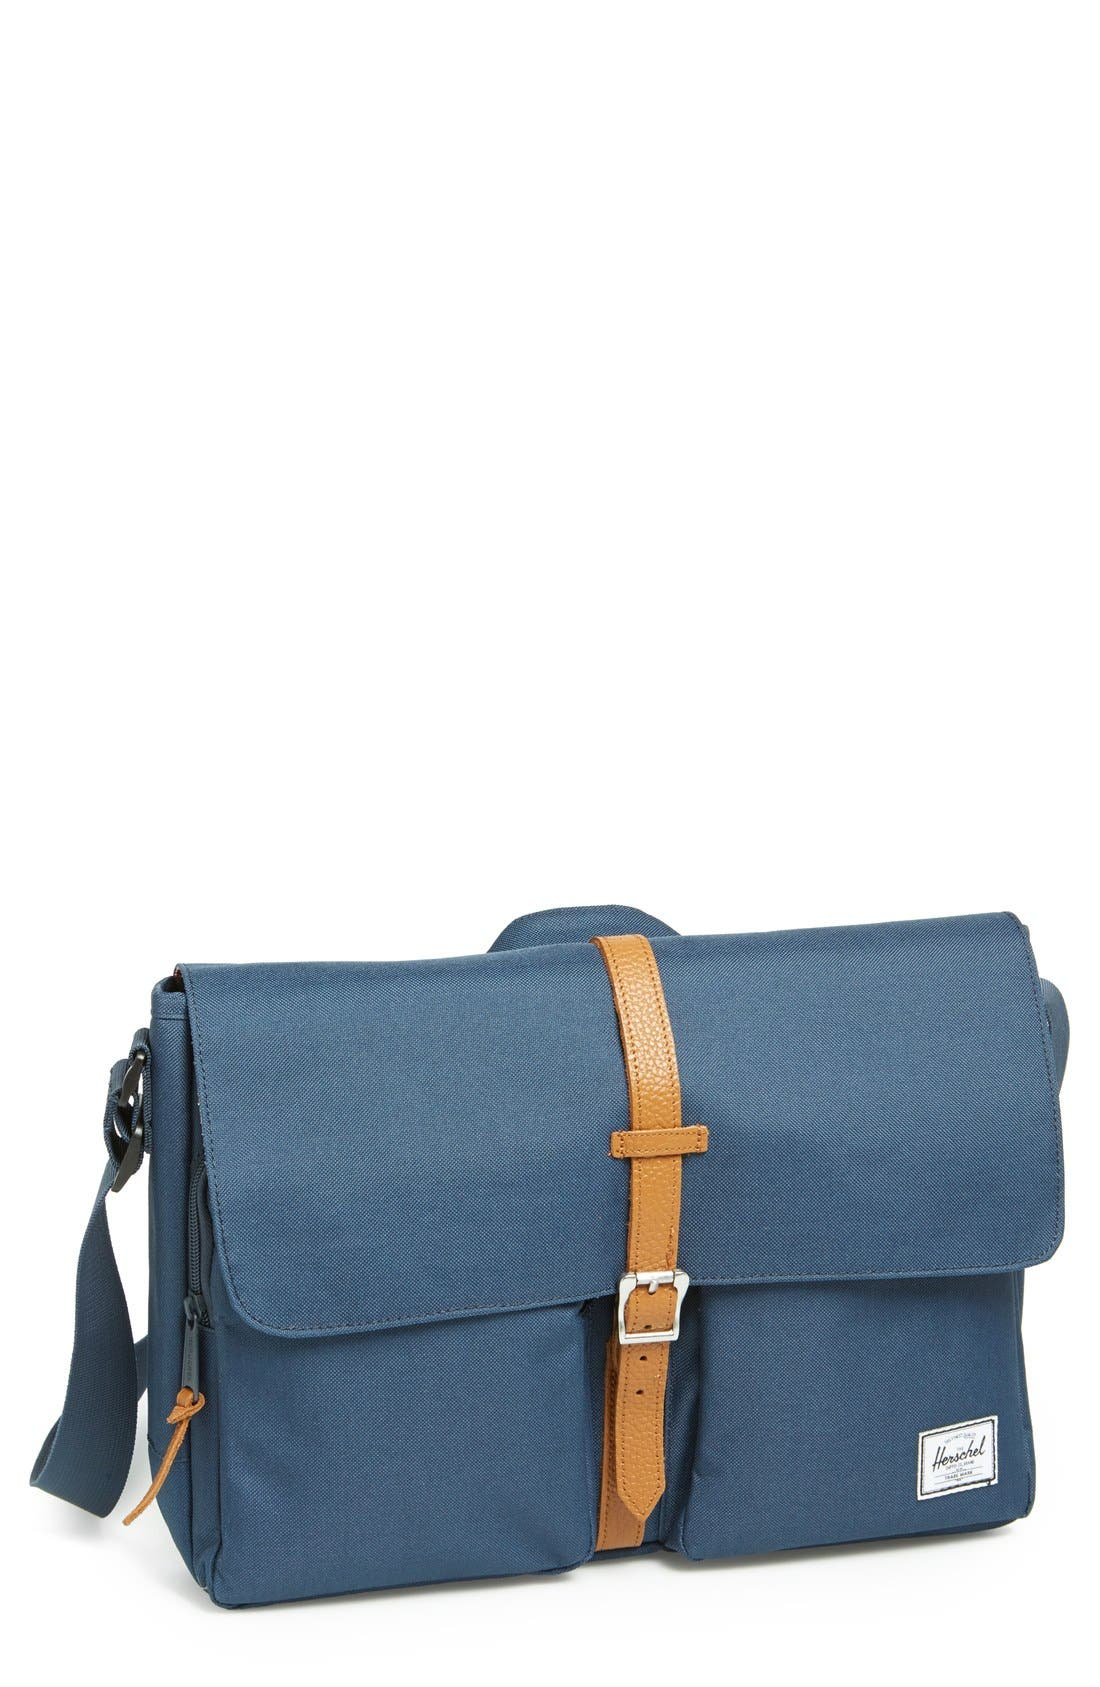 Alternate Image 1 Selected - Herschel Supply Co. 'Columbia' Messenger Bag